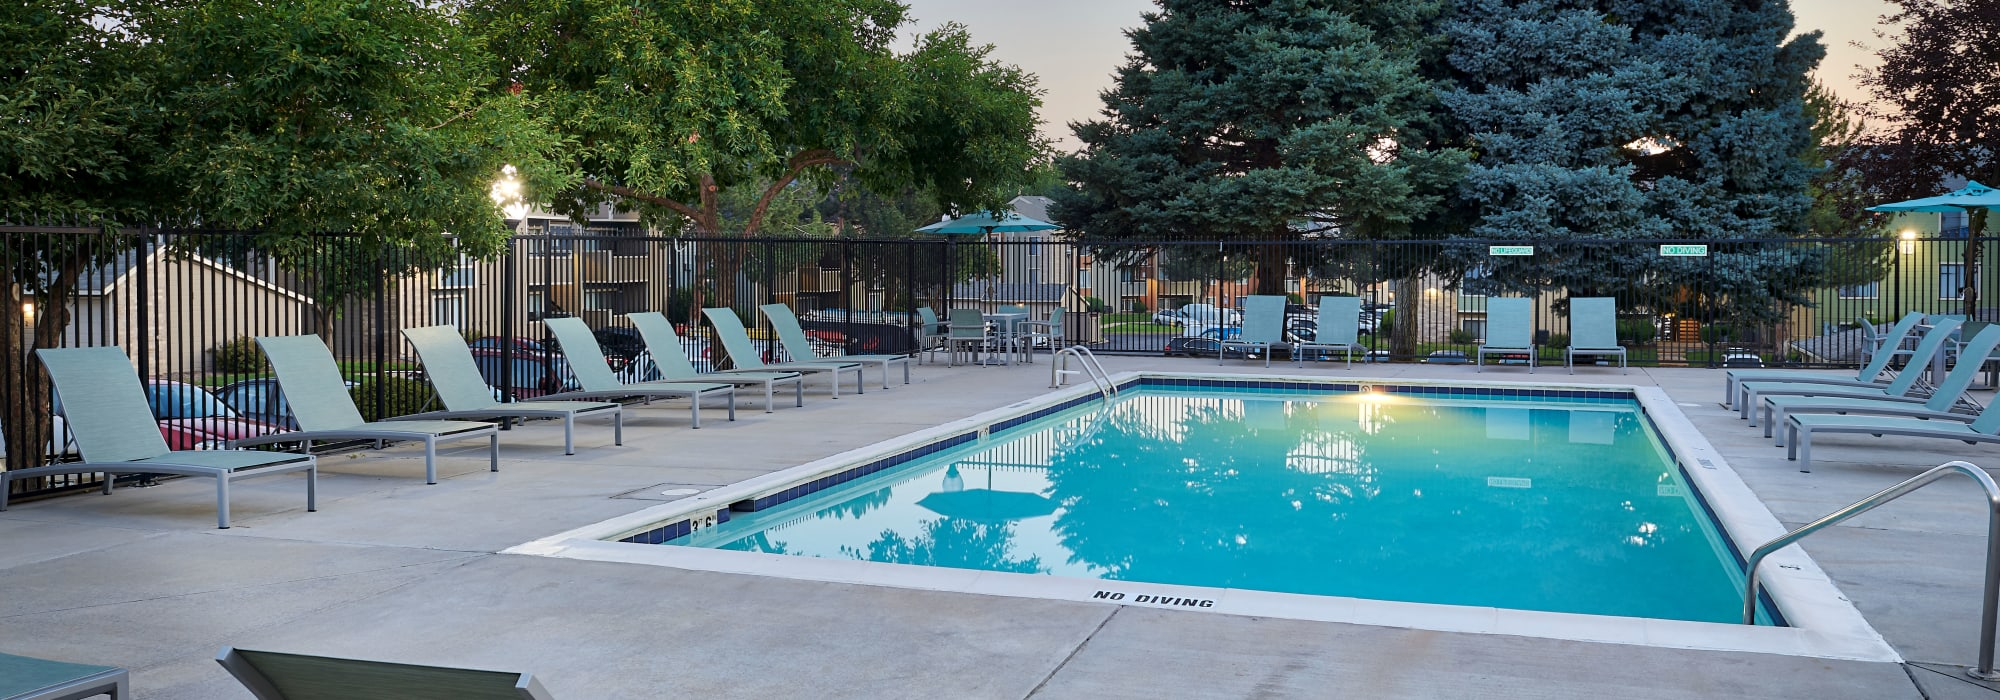 Amenities at Alton Green Apartments in Denver, Colorado